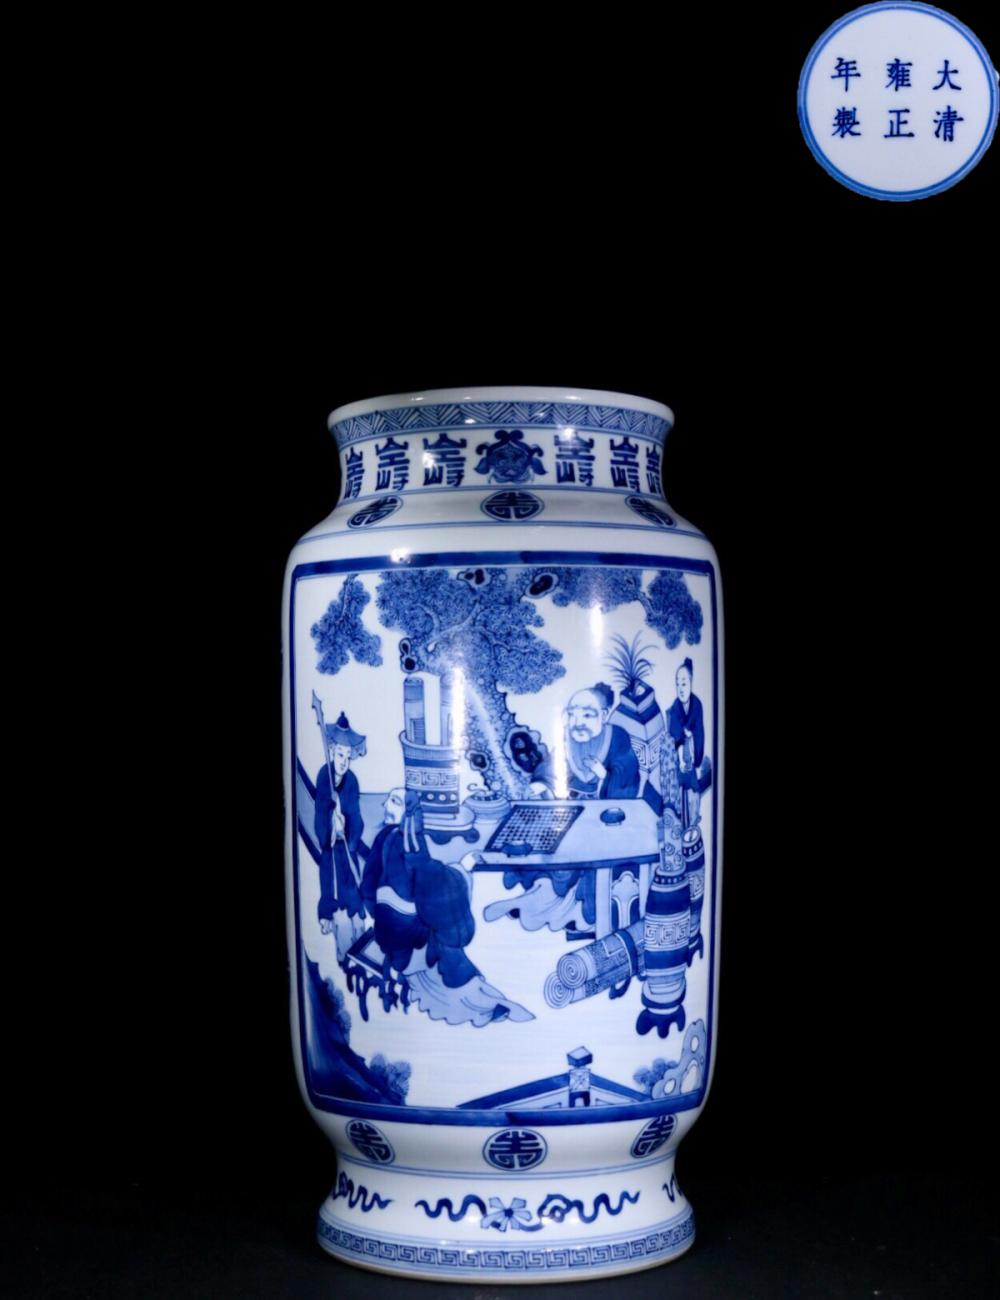 A BLUE&WHITE PORCELAIN VASE PAINTED STORY-TELLING PATTERN